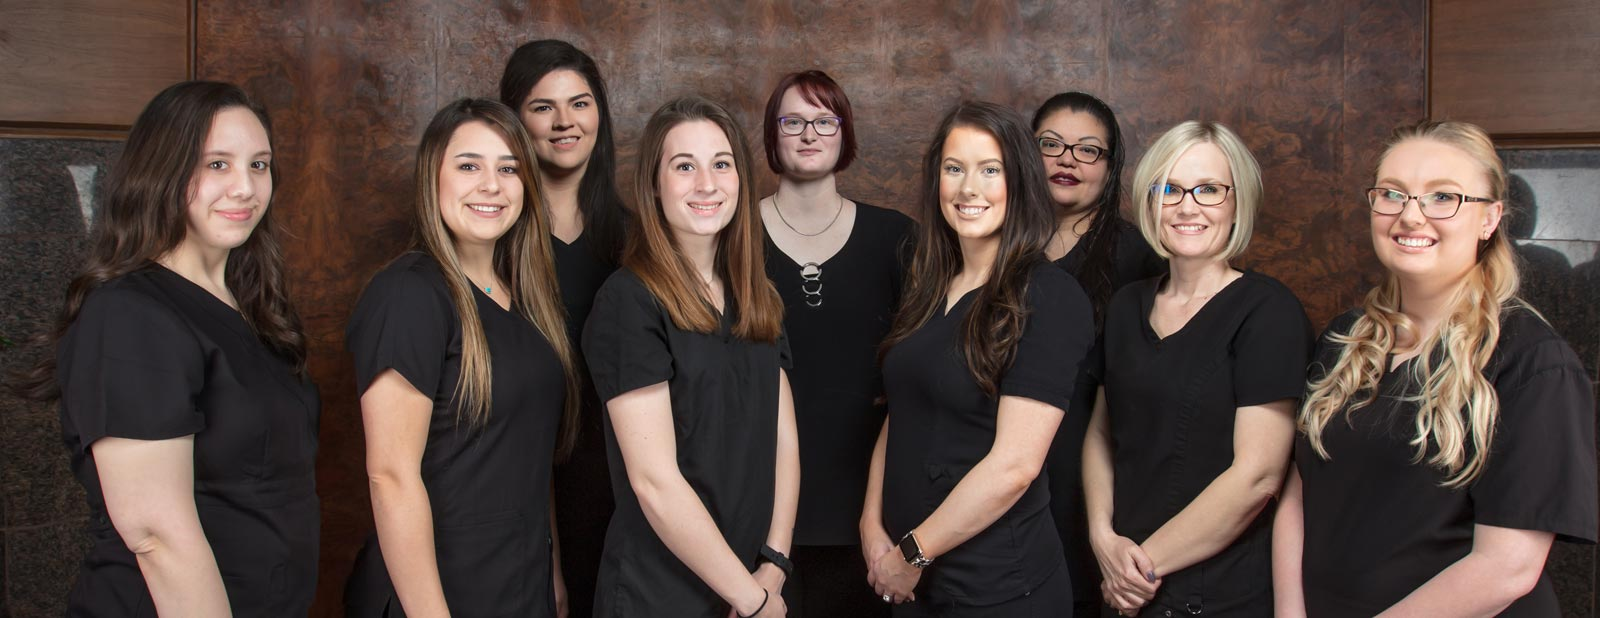 Staff Fort Worth Dermatologists